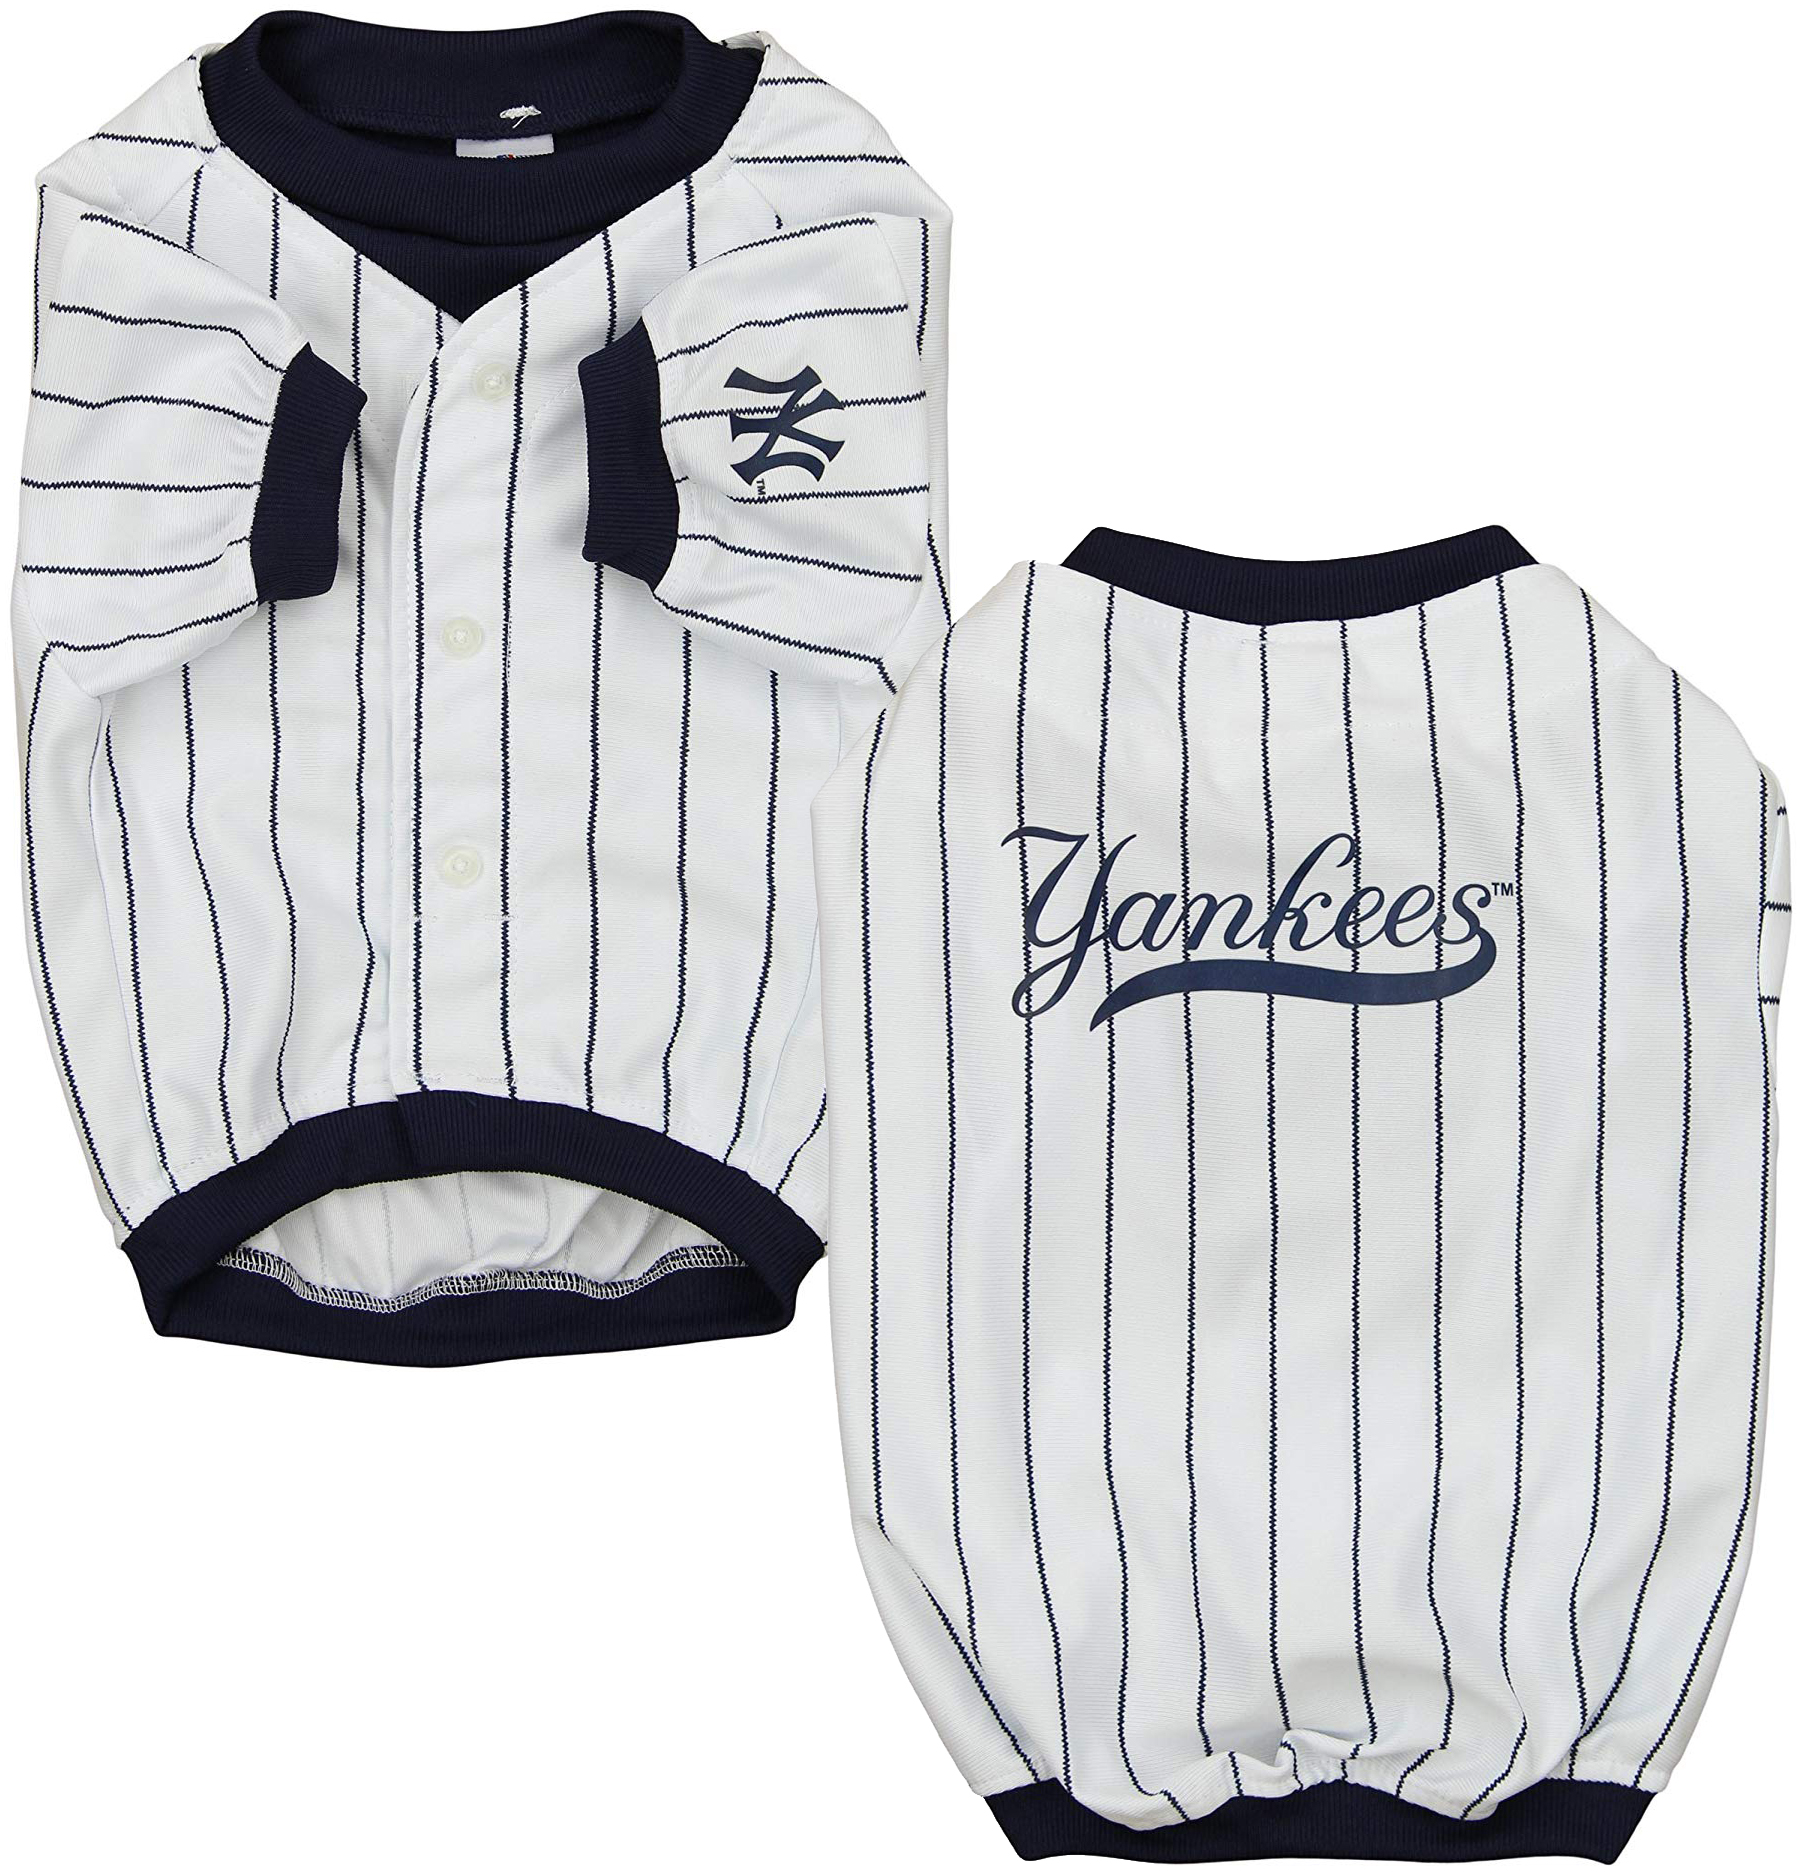 e7dfeeafc5e23 Sporty K9 MLB New York Yankees Baseball Dog Jersey